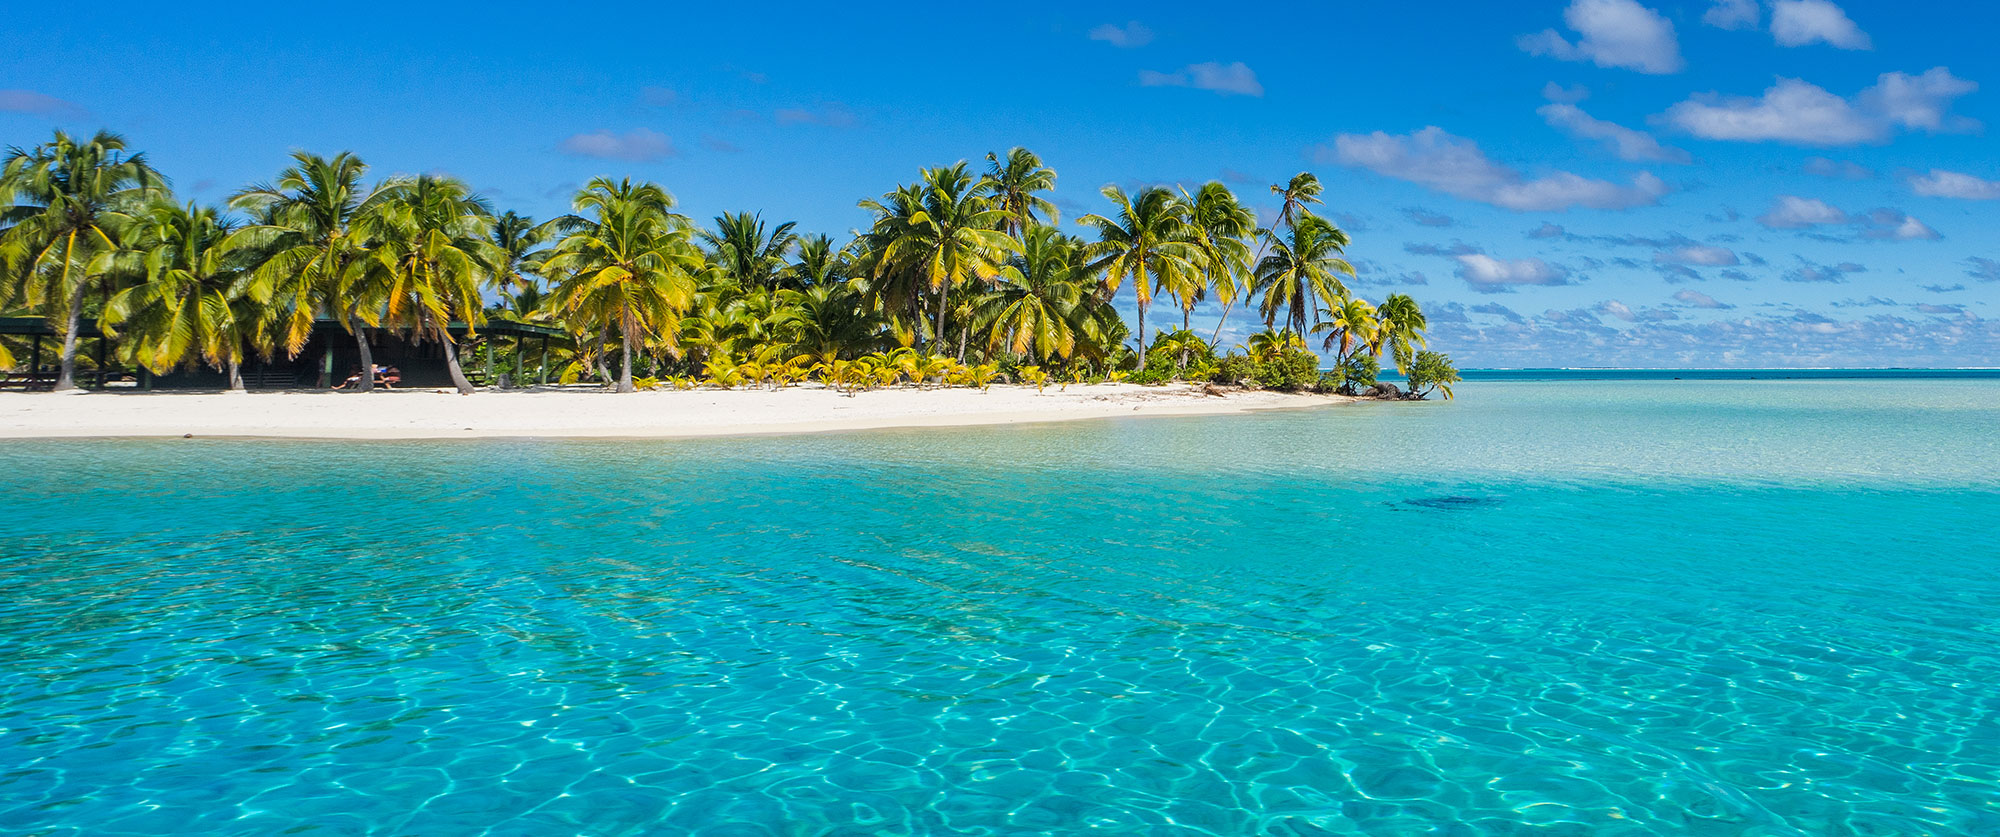 Cook Islands Lagoon and Beach - Plan Your Custom Cook Islands and New Zealand Journey Today!